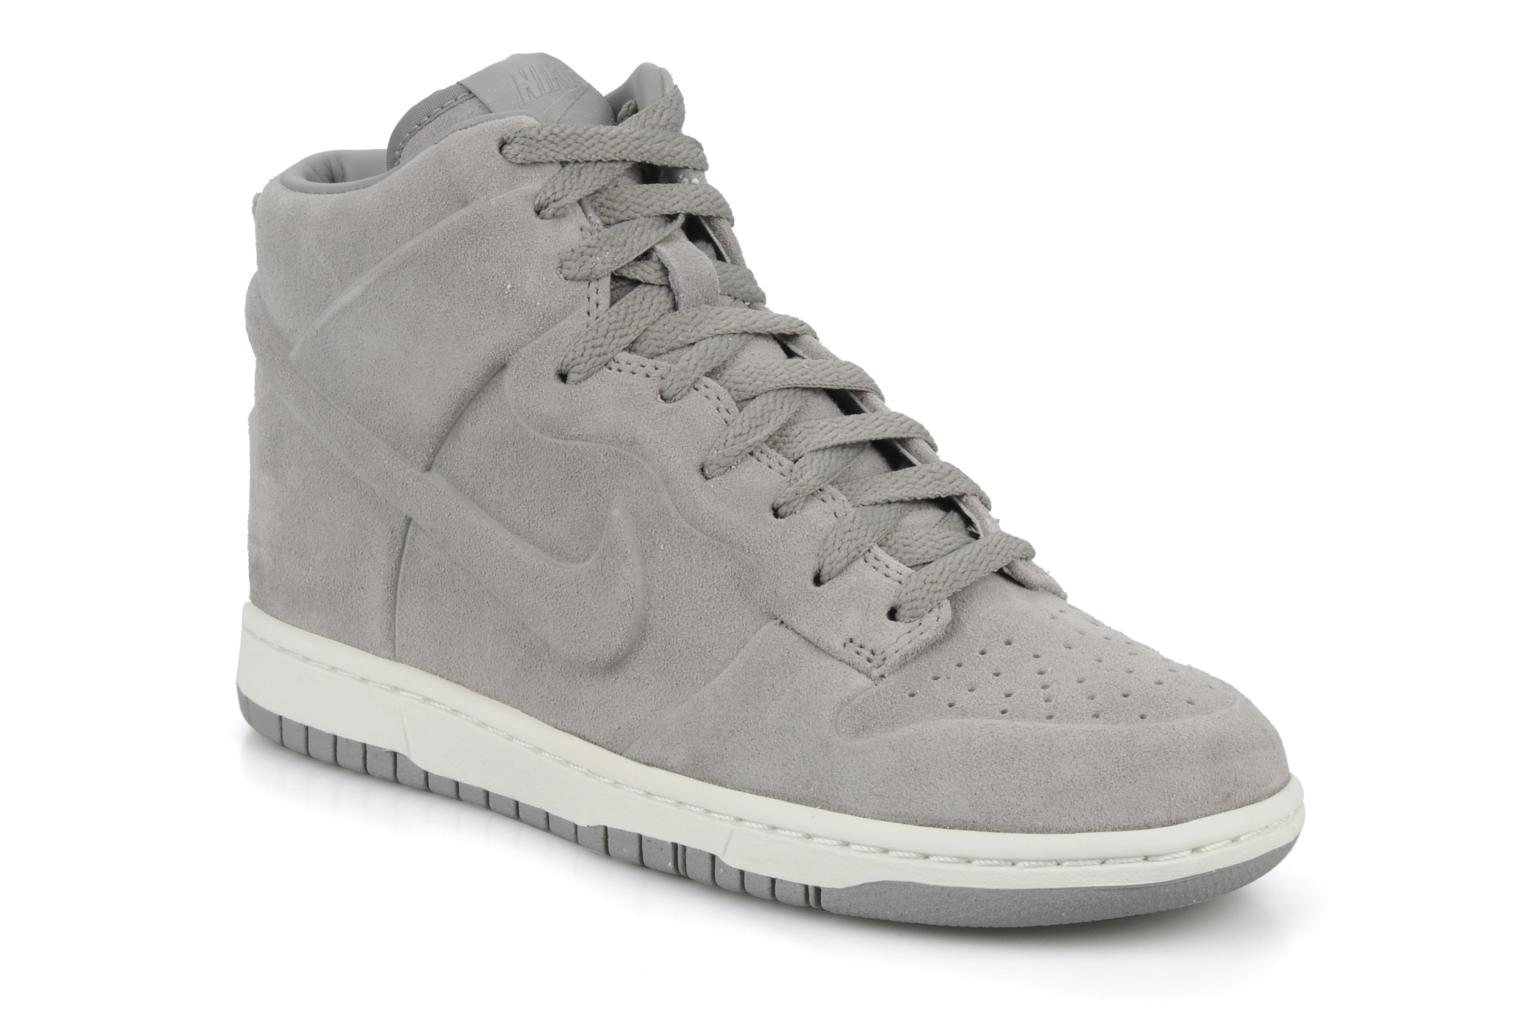 Wmns nike dunk high skinny prem Medium grey